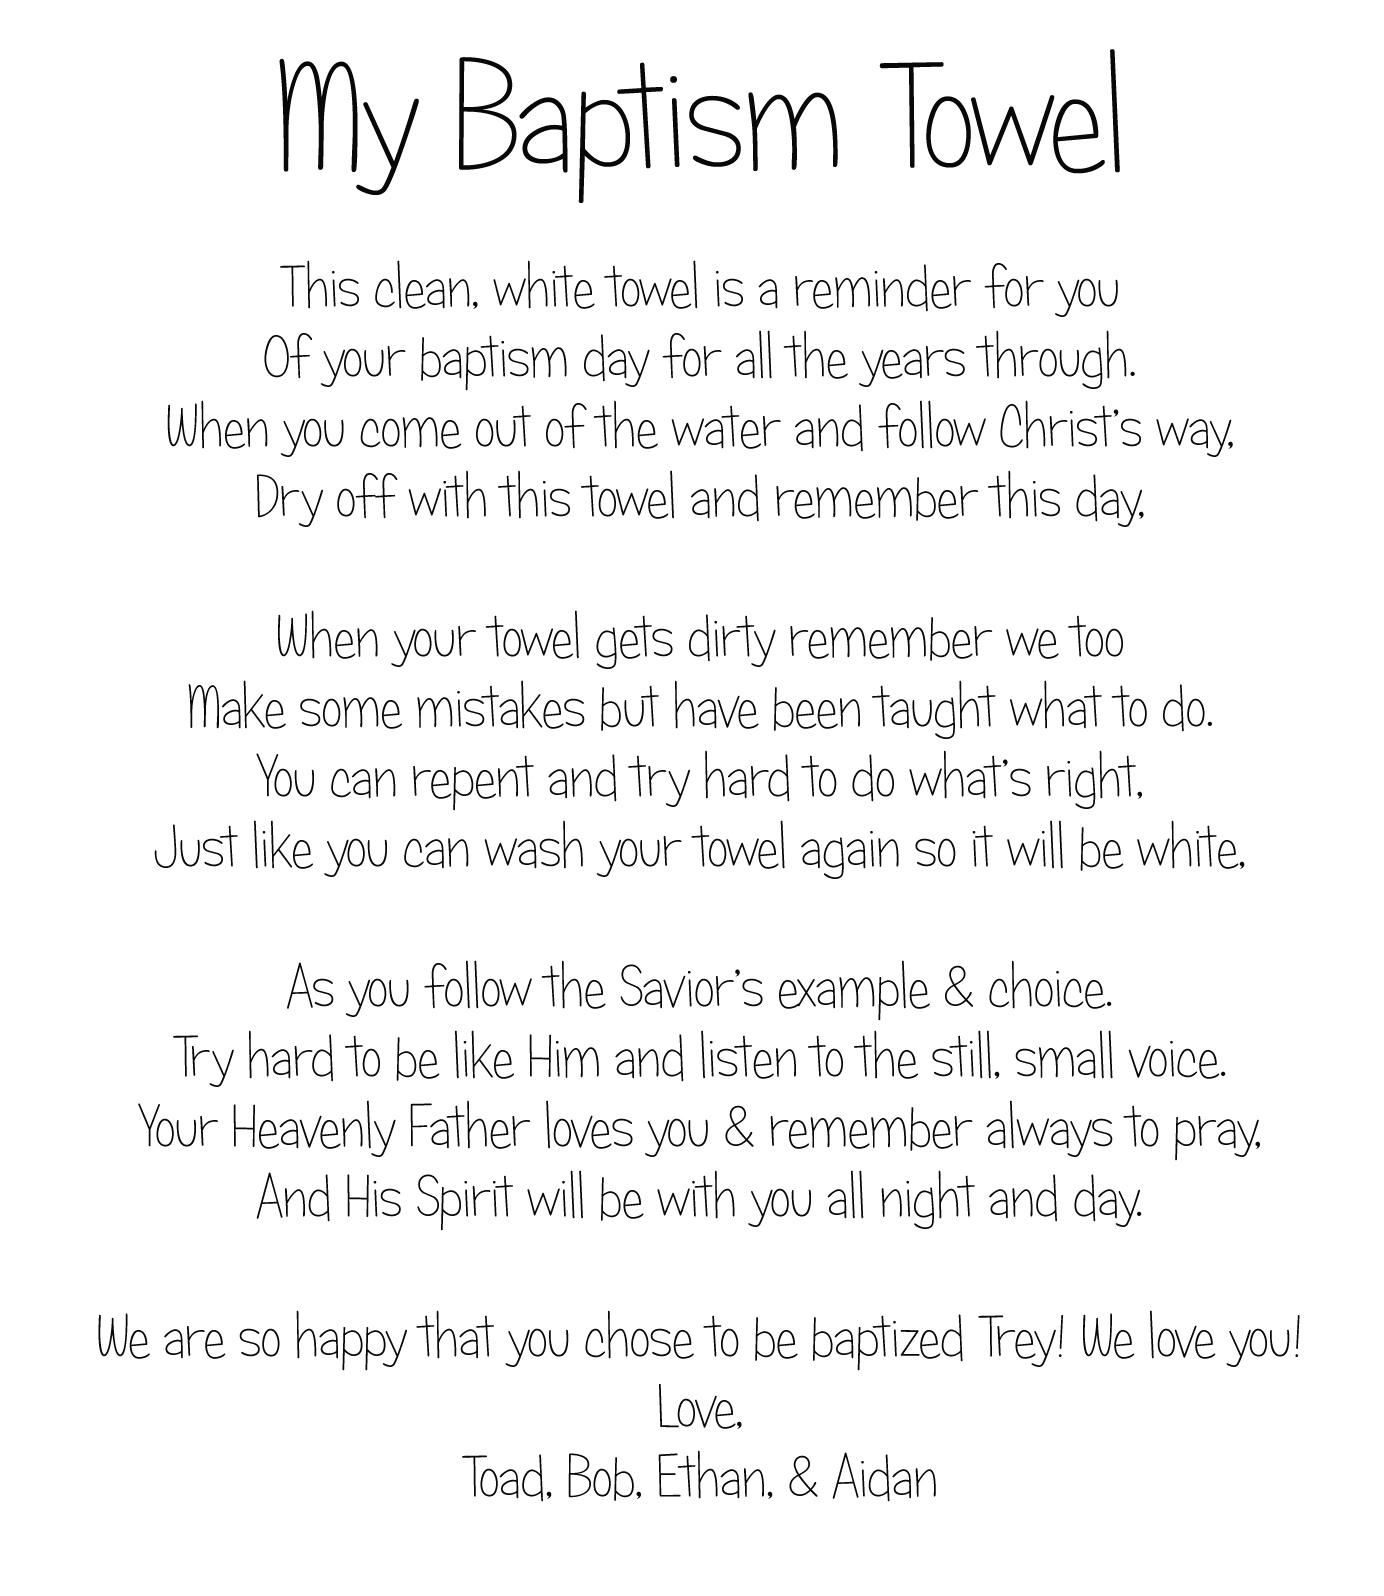 Toad's Treasures: Special Bottles & Baptism Gifts